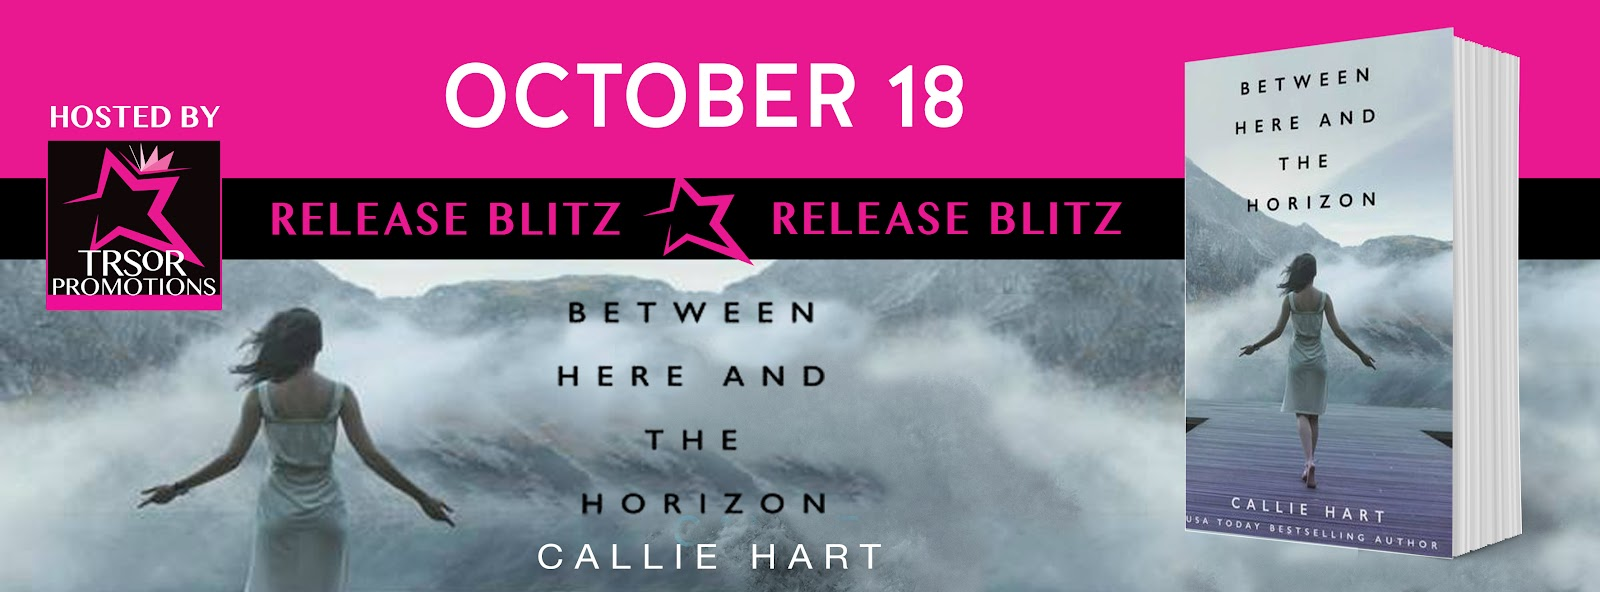 BETWEEN_HERE_RELEASE_BLITZ.jpg